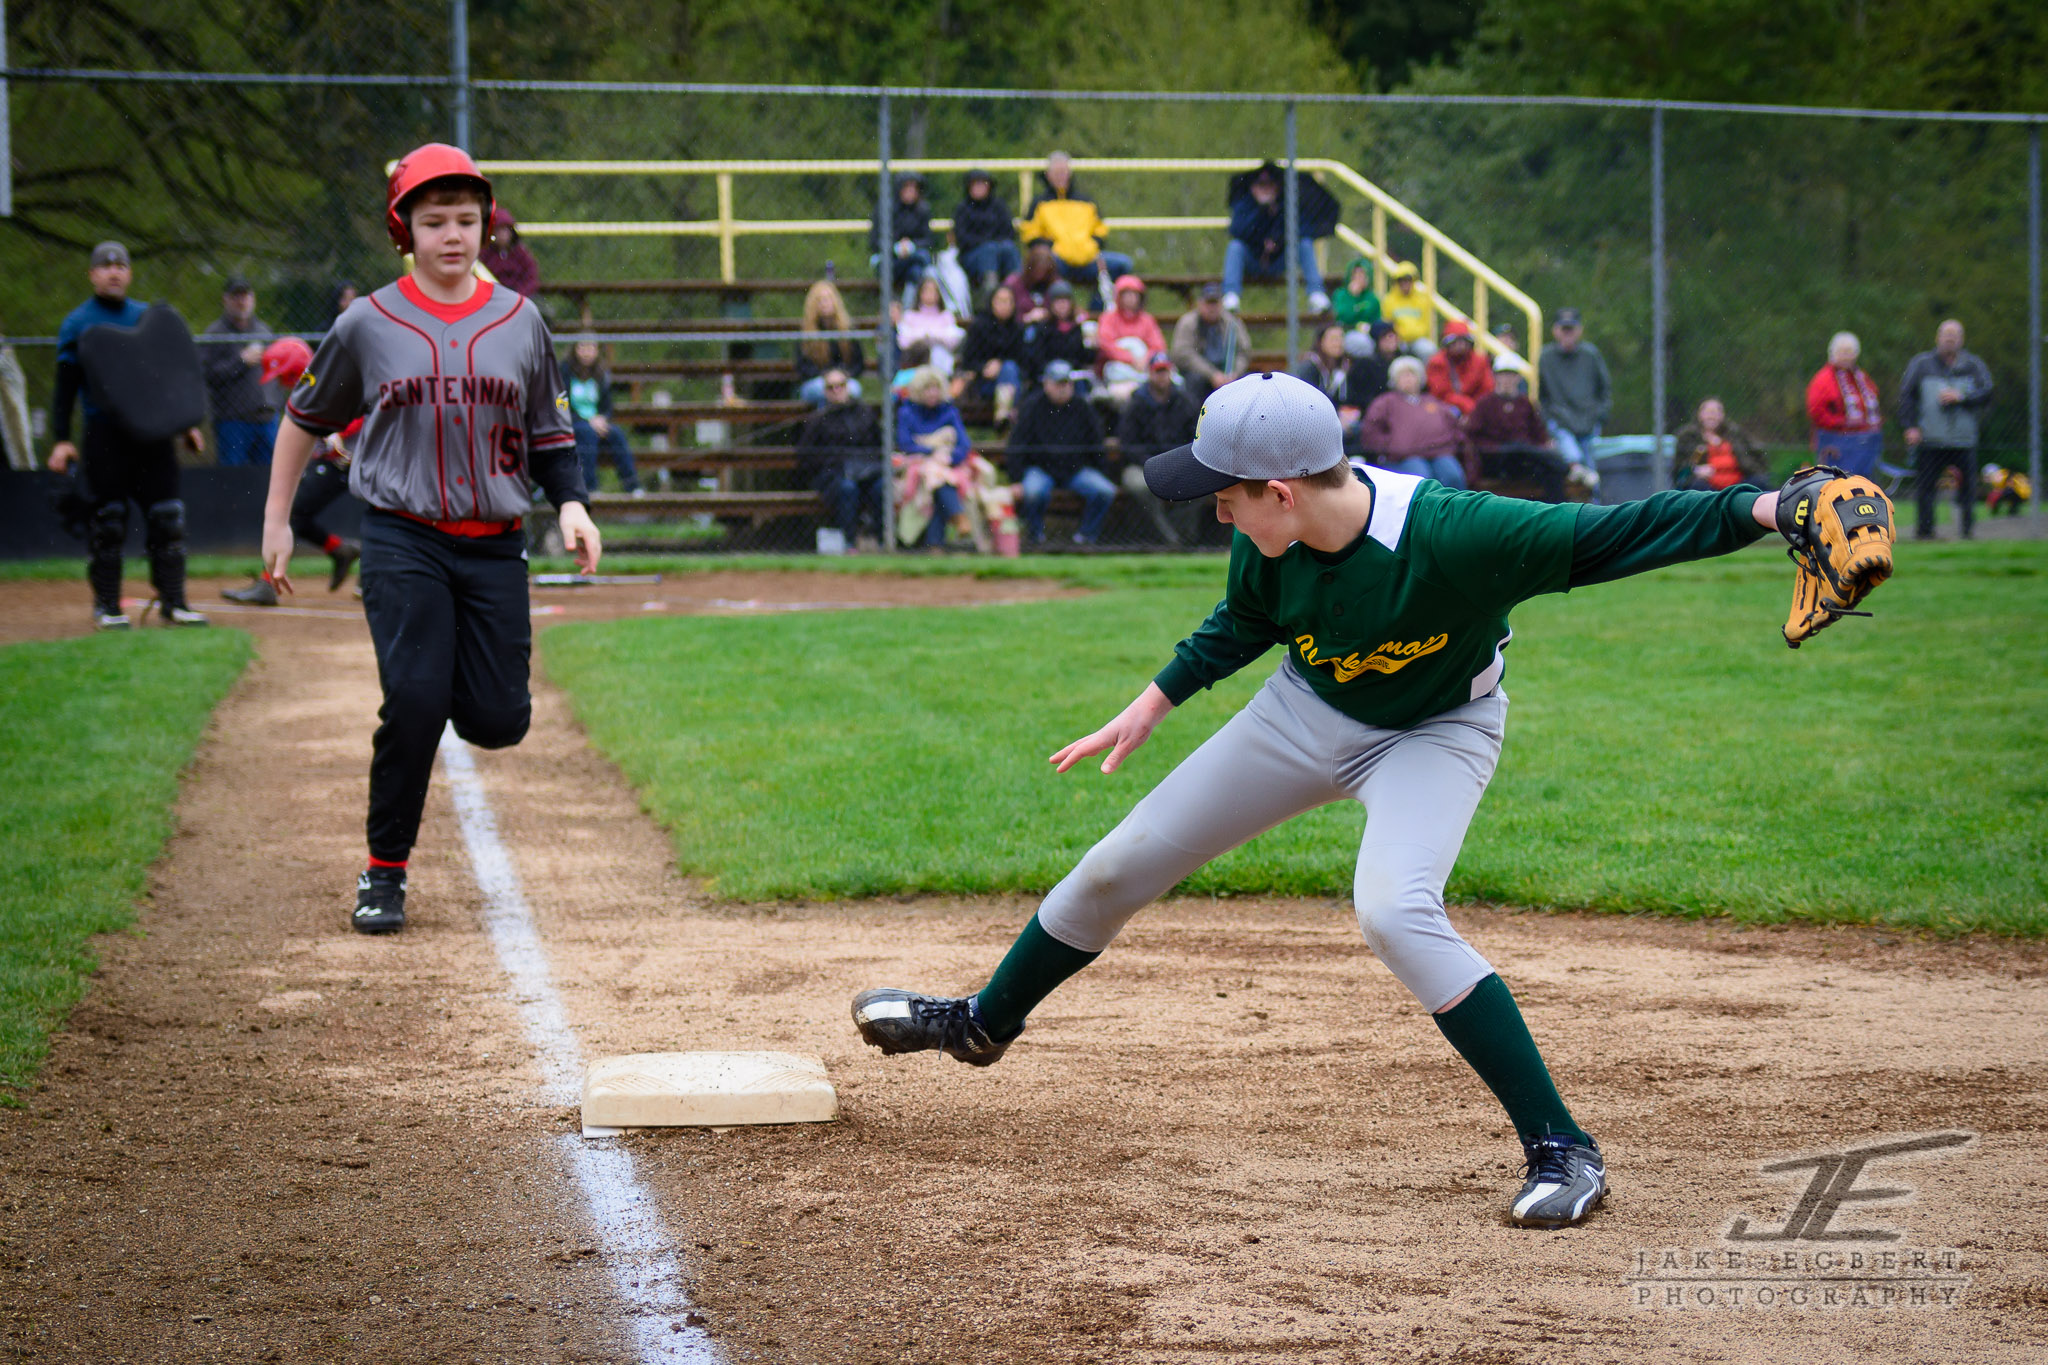 FB - 2014-04-05 - GreenSox - 19412.jpg